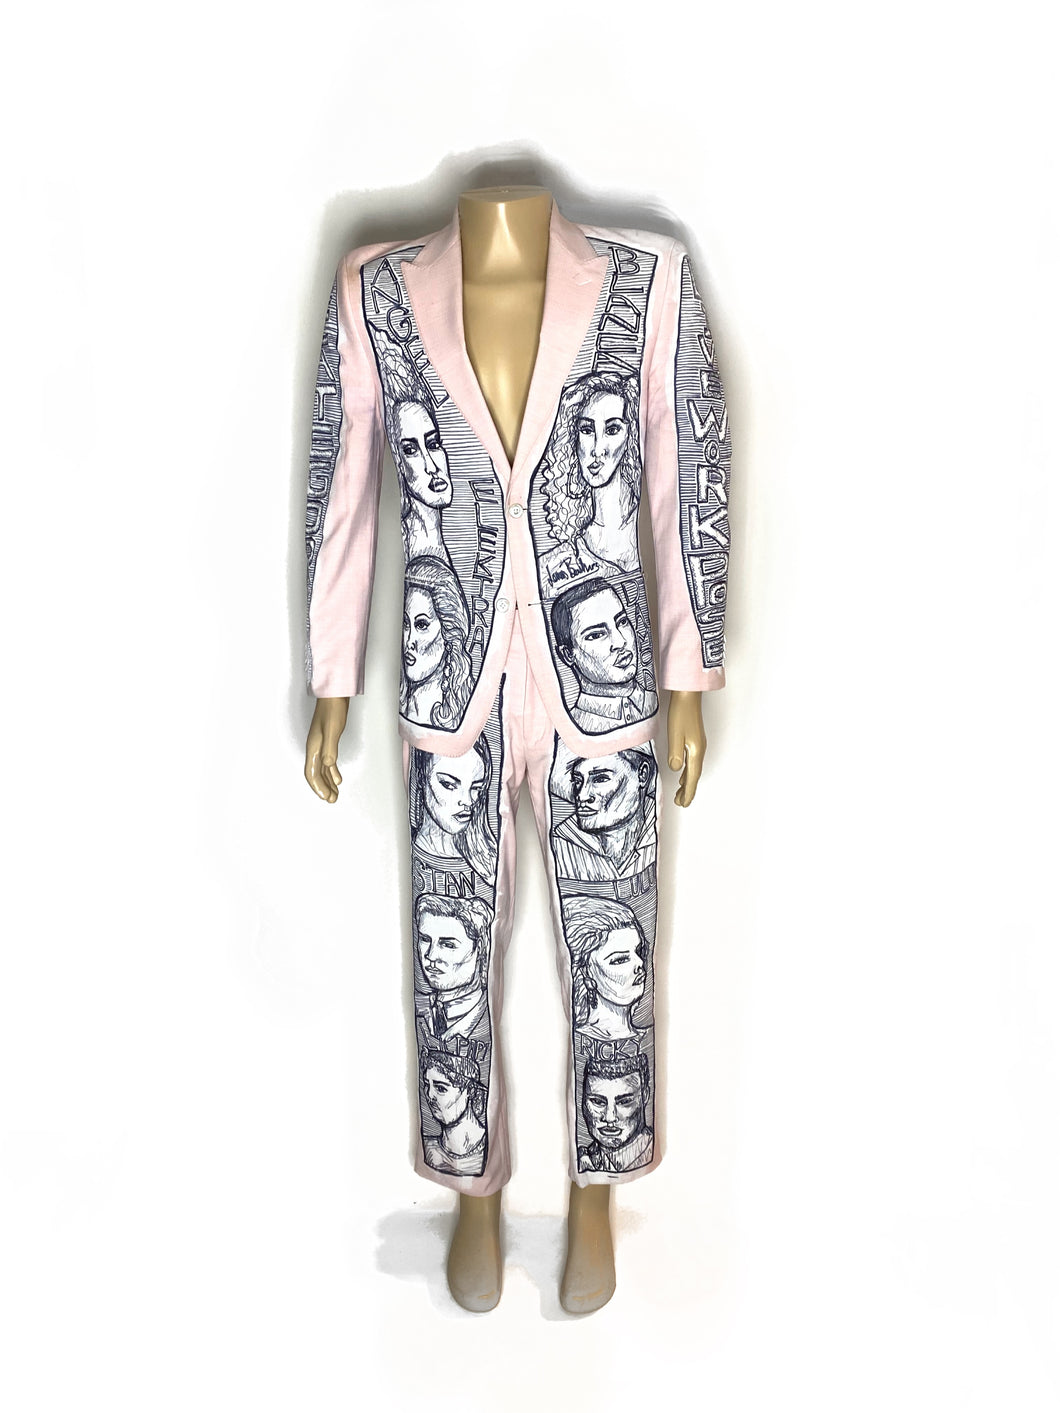 BEILHARZ Pose 2 Piece Suit